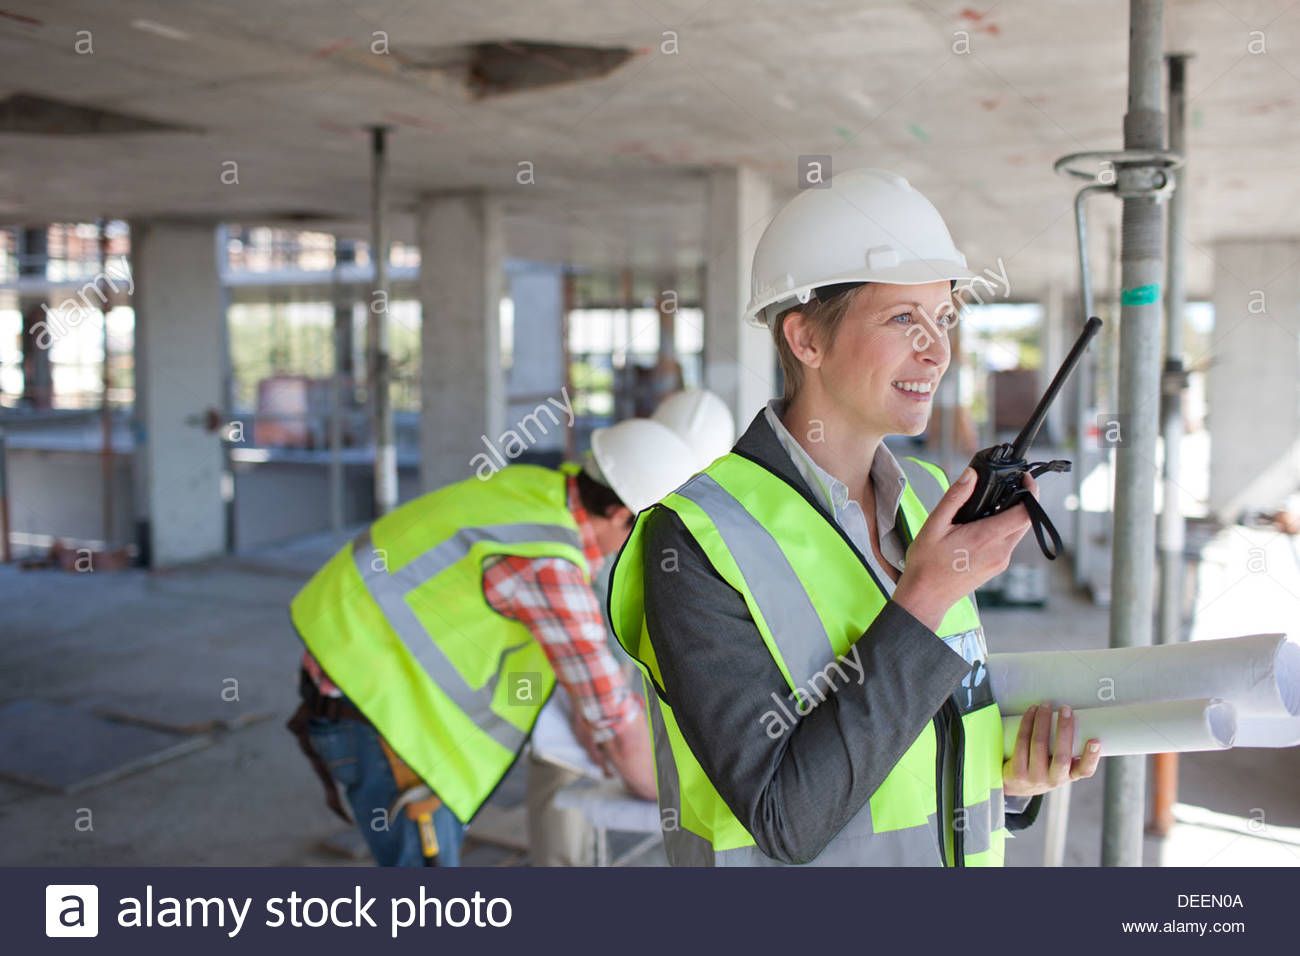 Businesswoman talking on walkie talkie on construction site - Stock Image